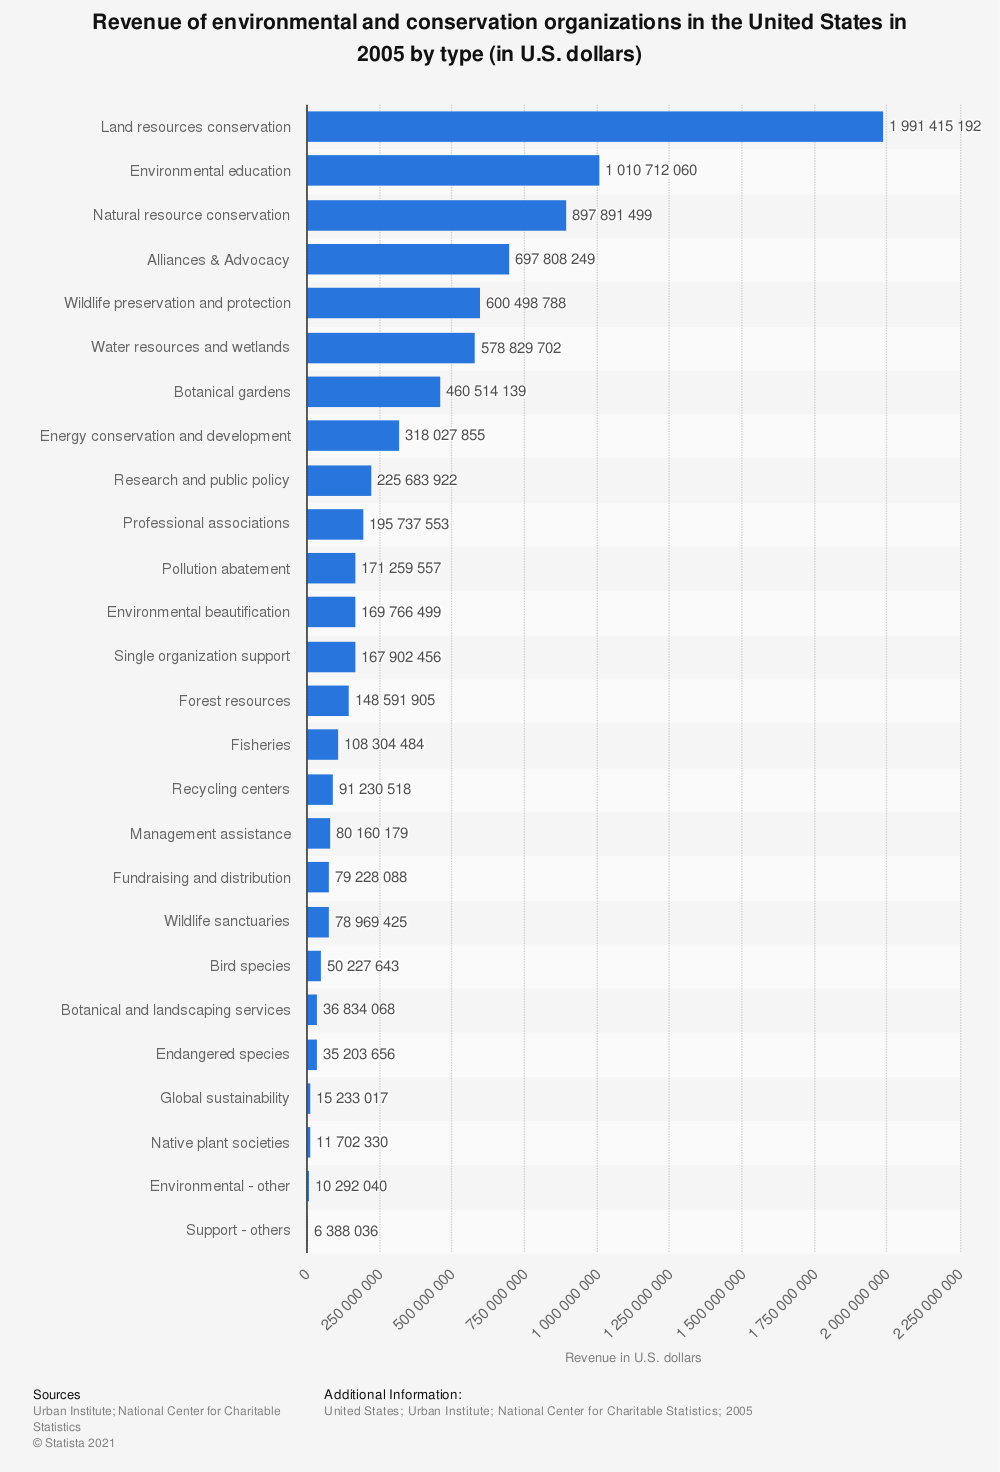 Statistic: Revenue of environmental and conservation organizations in the United States in 2005 by type (in U.S. dollars) | Statista